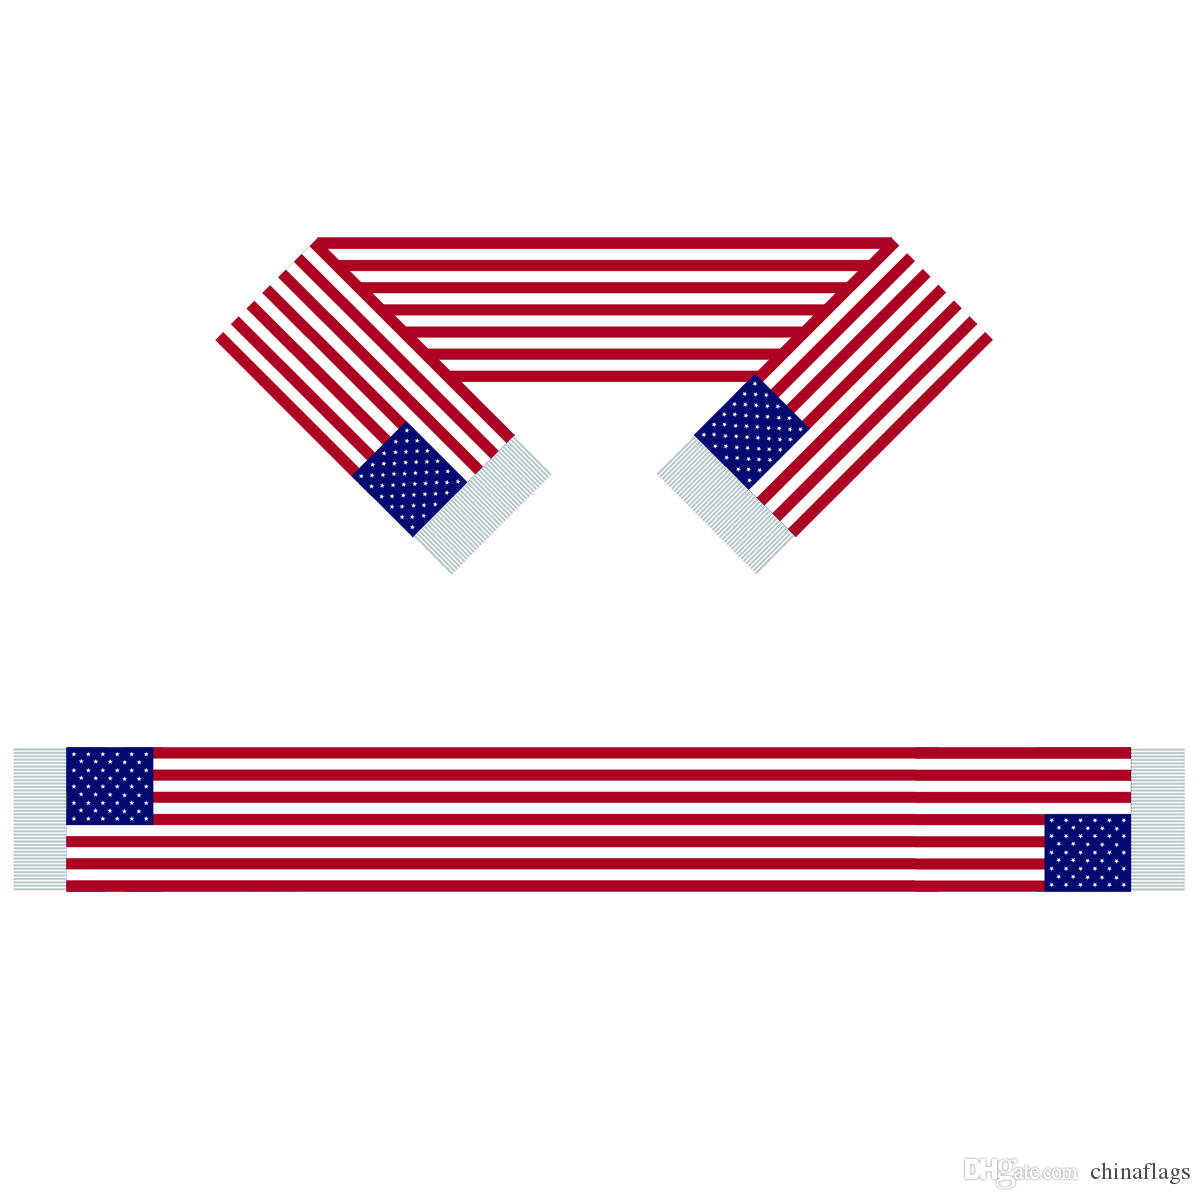 The United States Scarf Banner 6X60 inch 100% Polyester, World Flag Scarf, puede usar personas o juegos que le brinden apoyo